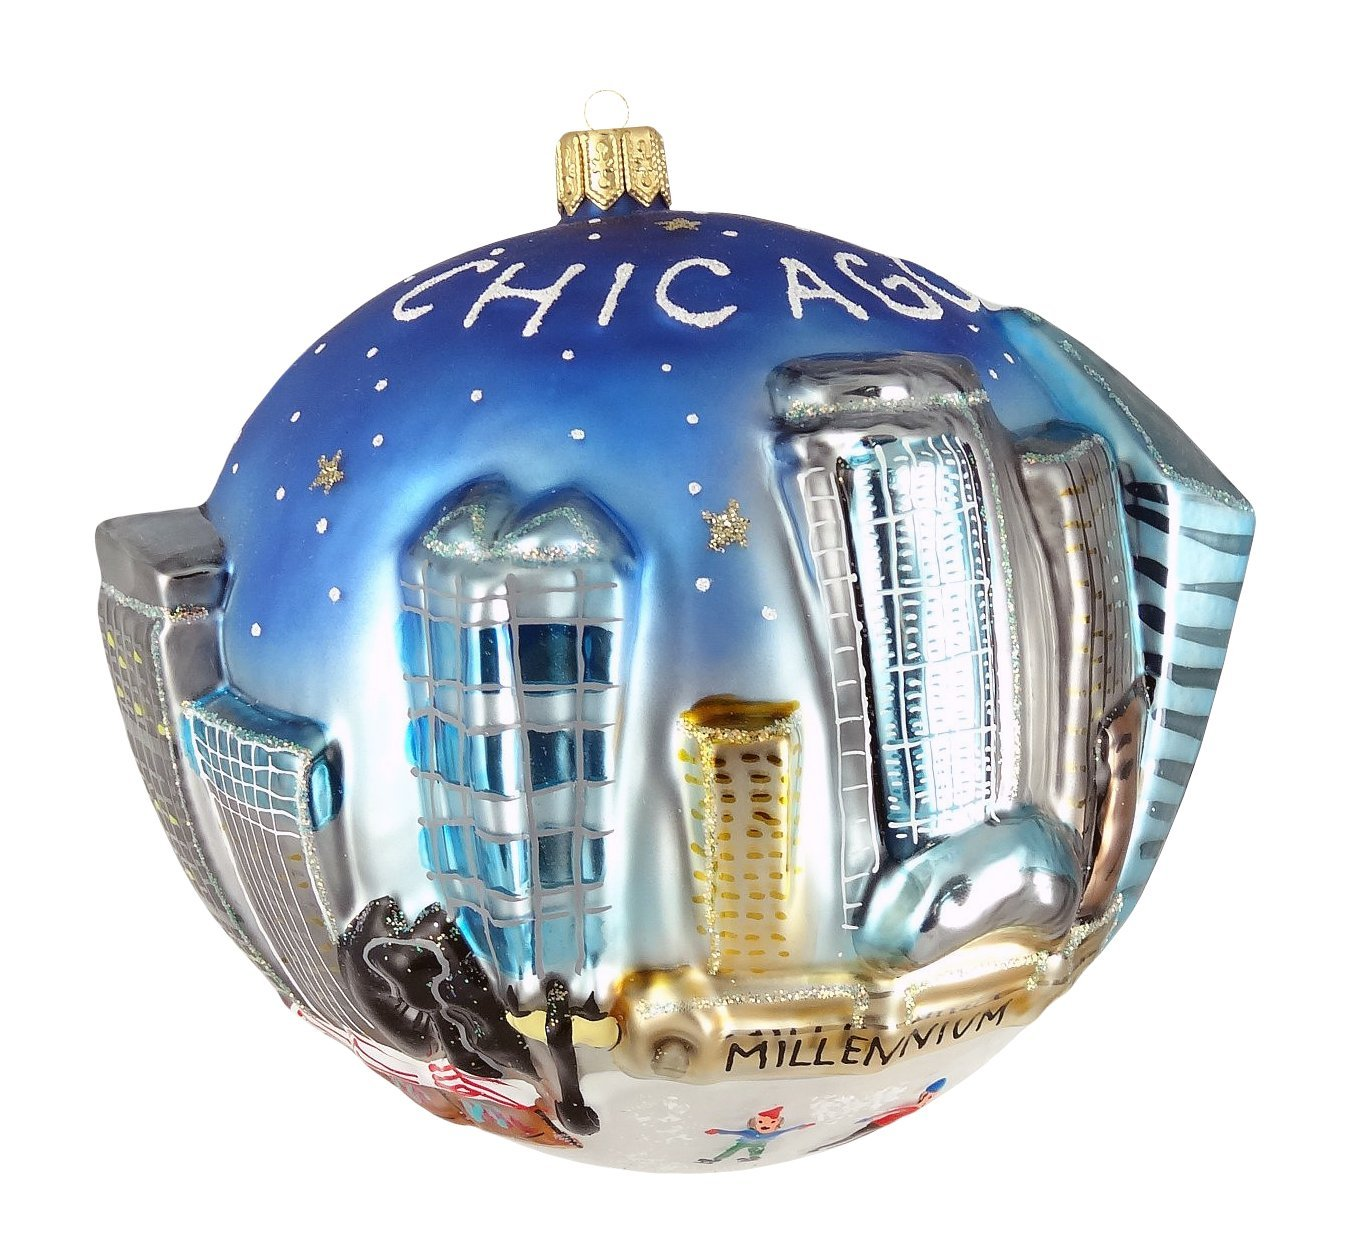 City of Chicago Christmas Ornaments - Christmas Ornament Shop